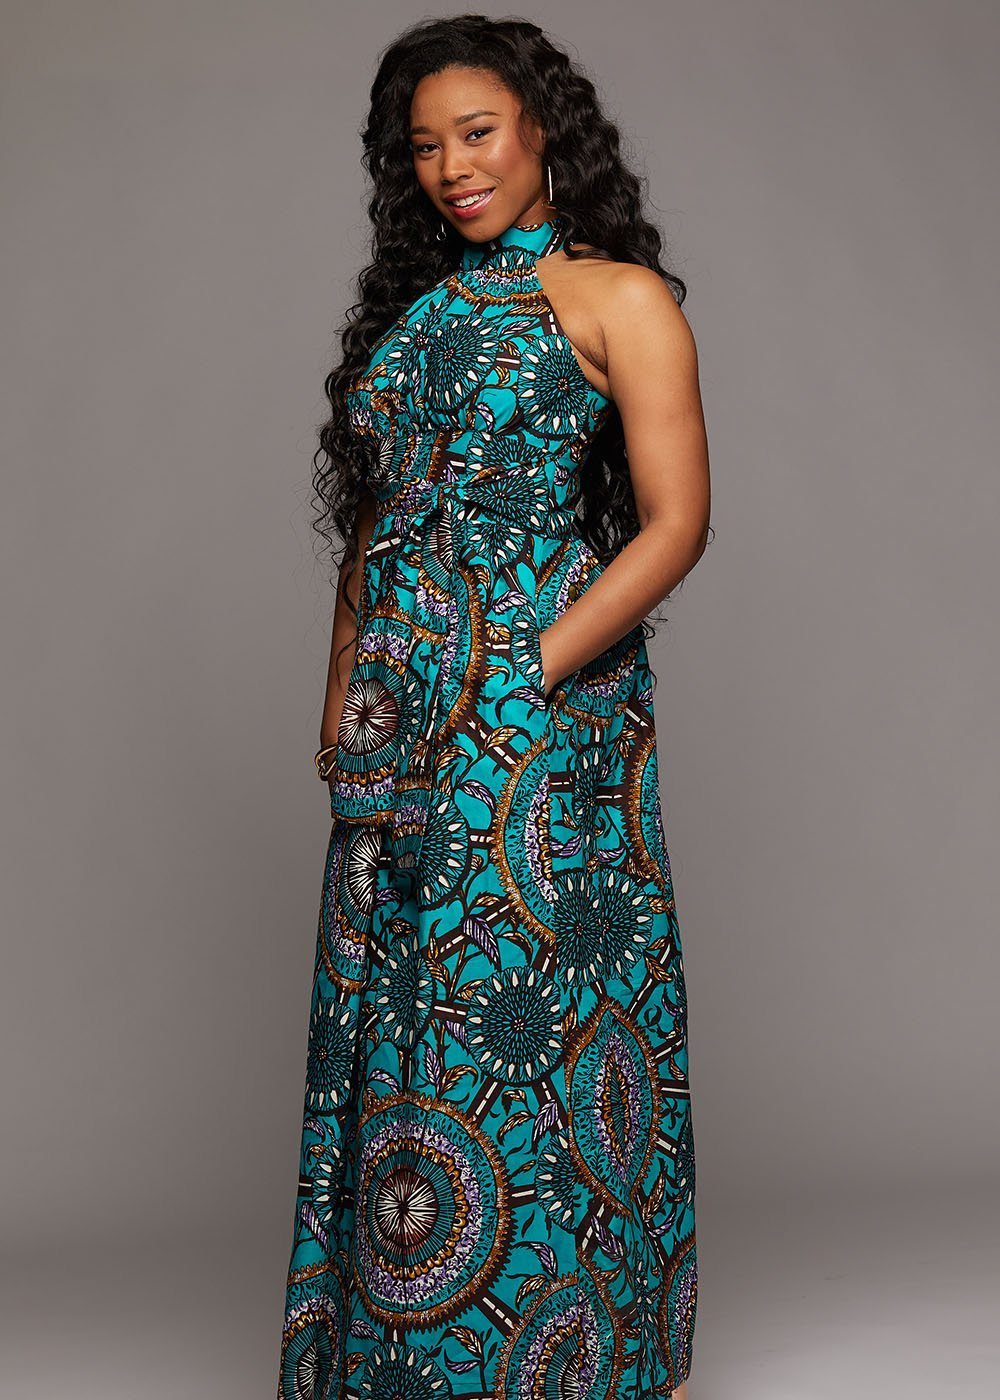 fad6c4bfd3970 Pictures Of Nice African Dresses - raveitsafe